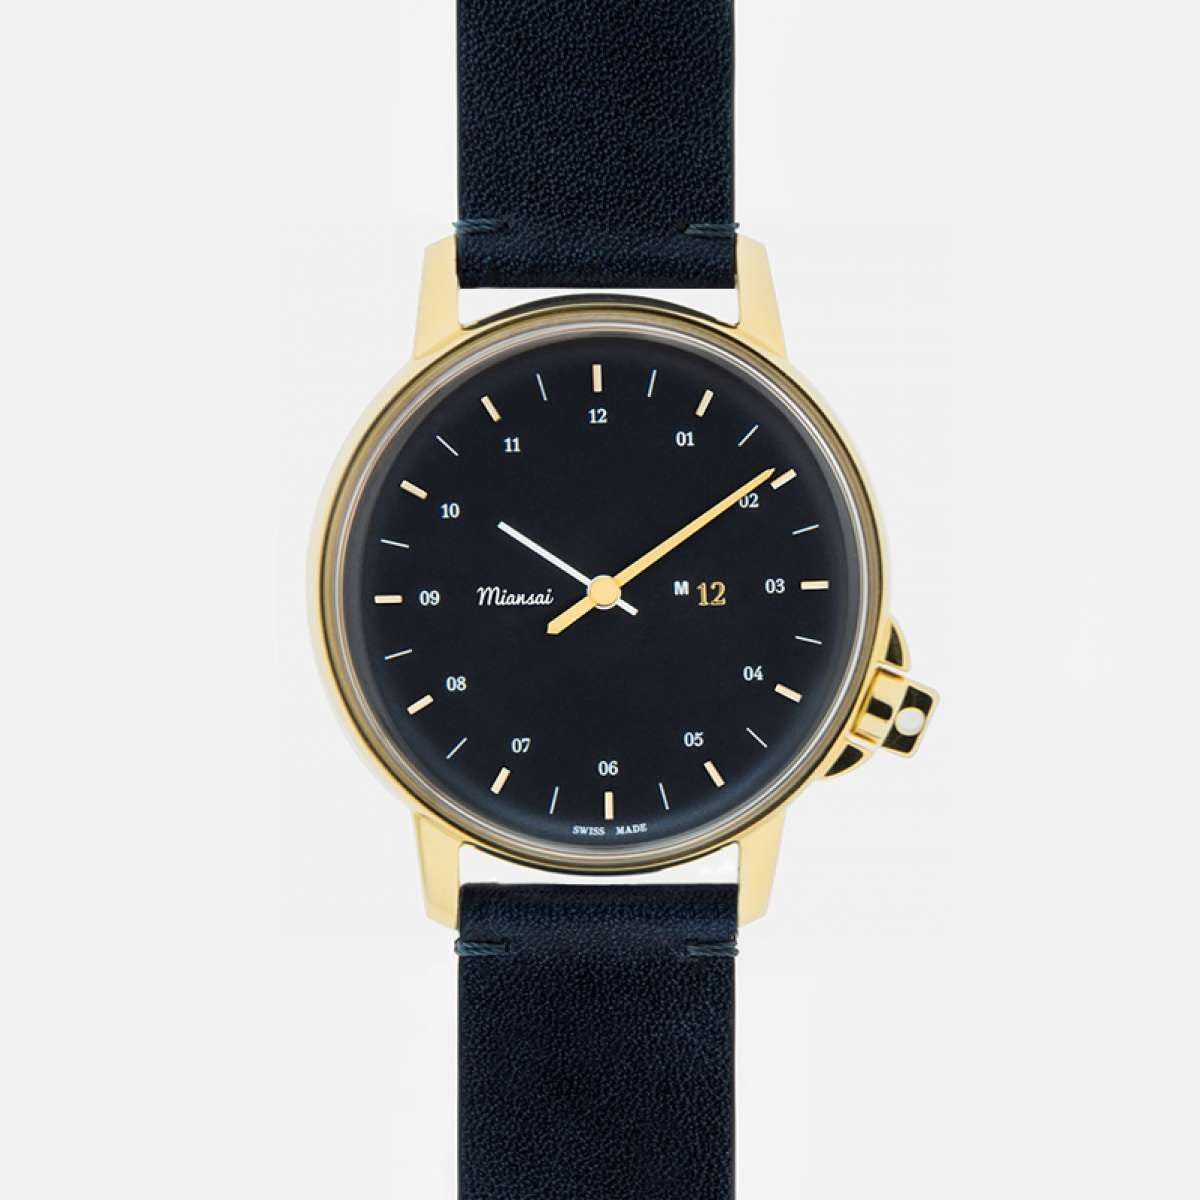 Miansai M12 Swiss Navy/Gold Watch on Vintage Leather Strap